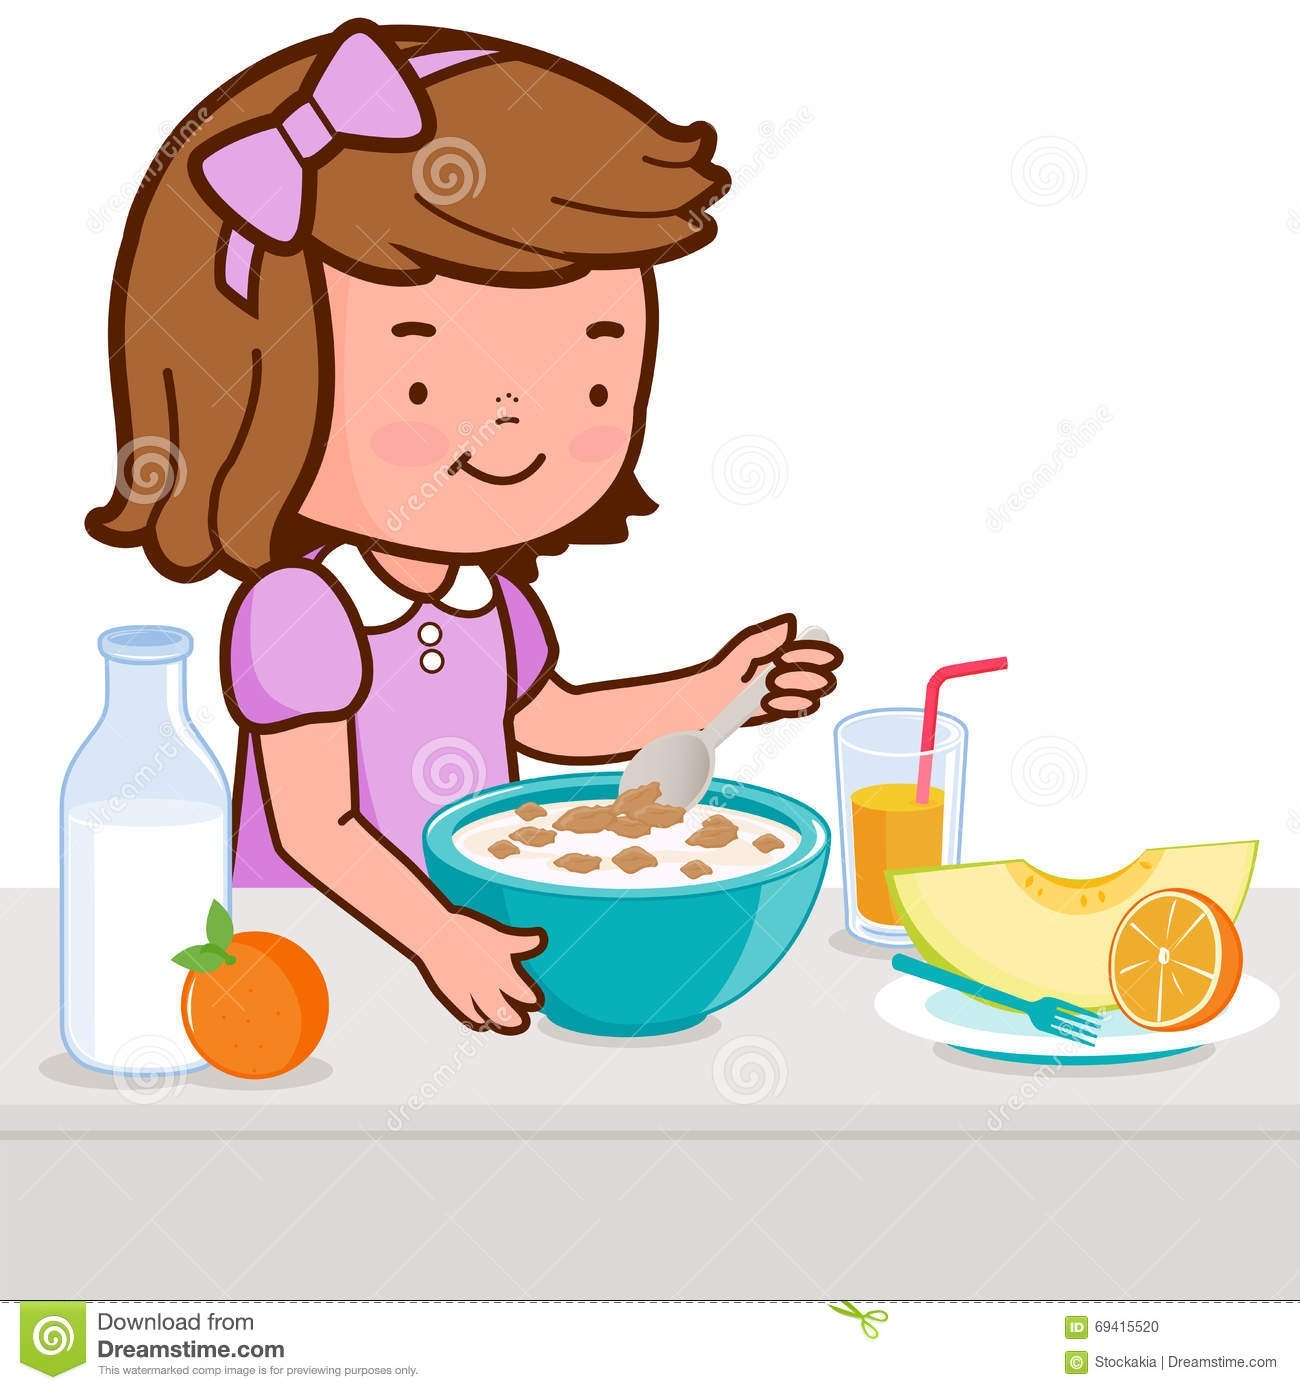 To eat breakfast clipart image library download Little Girl Having Breakfast Stock Vector – Illustration ... image library download